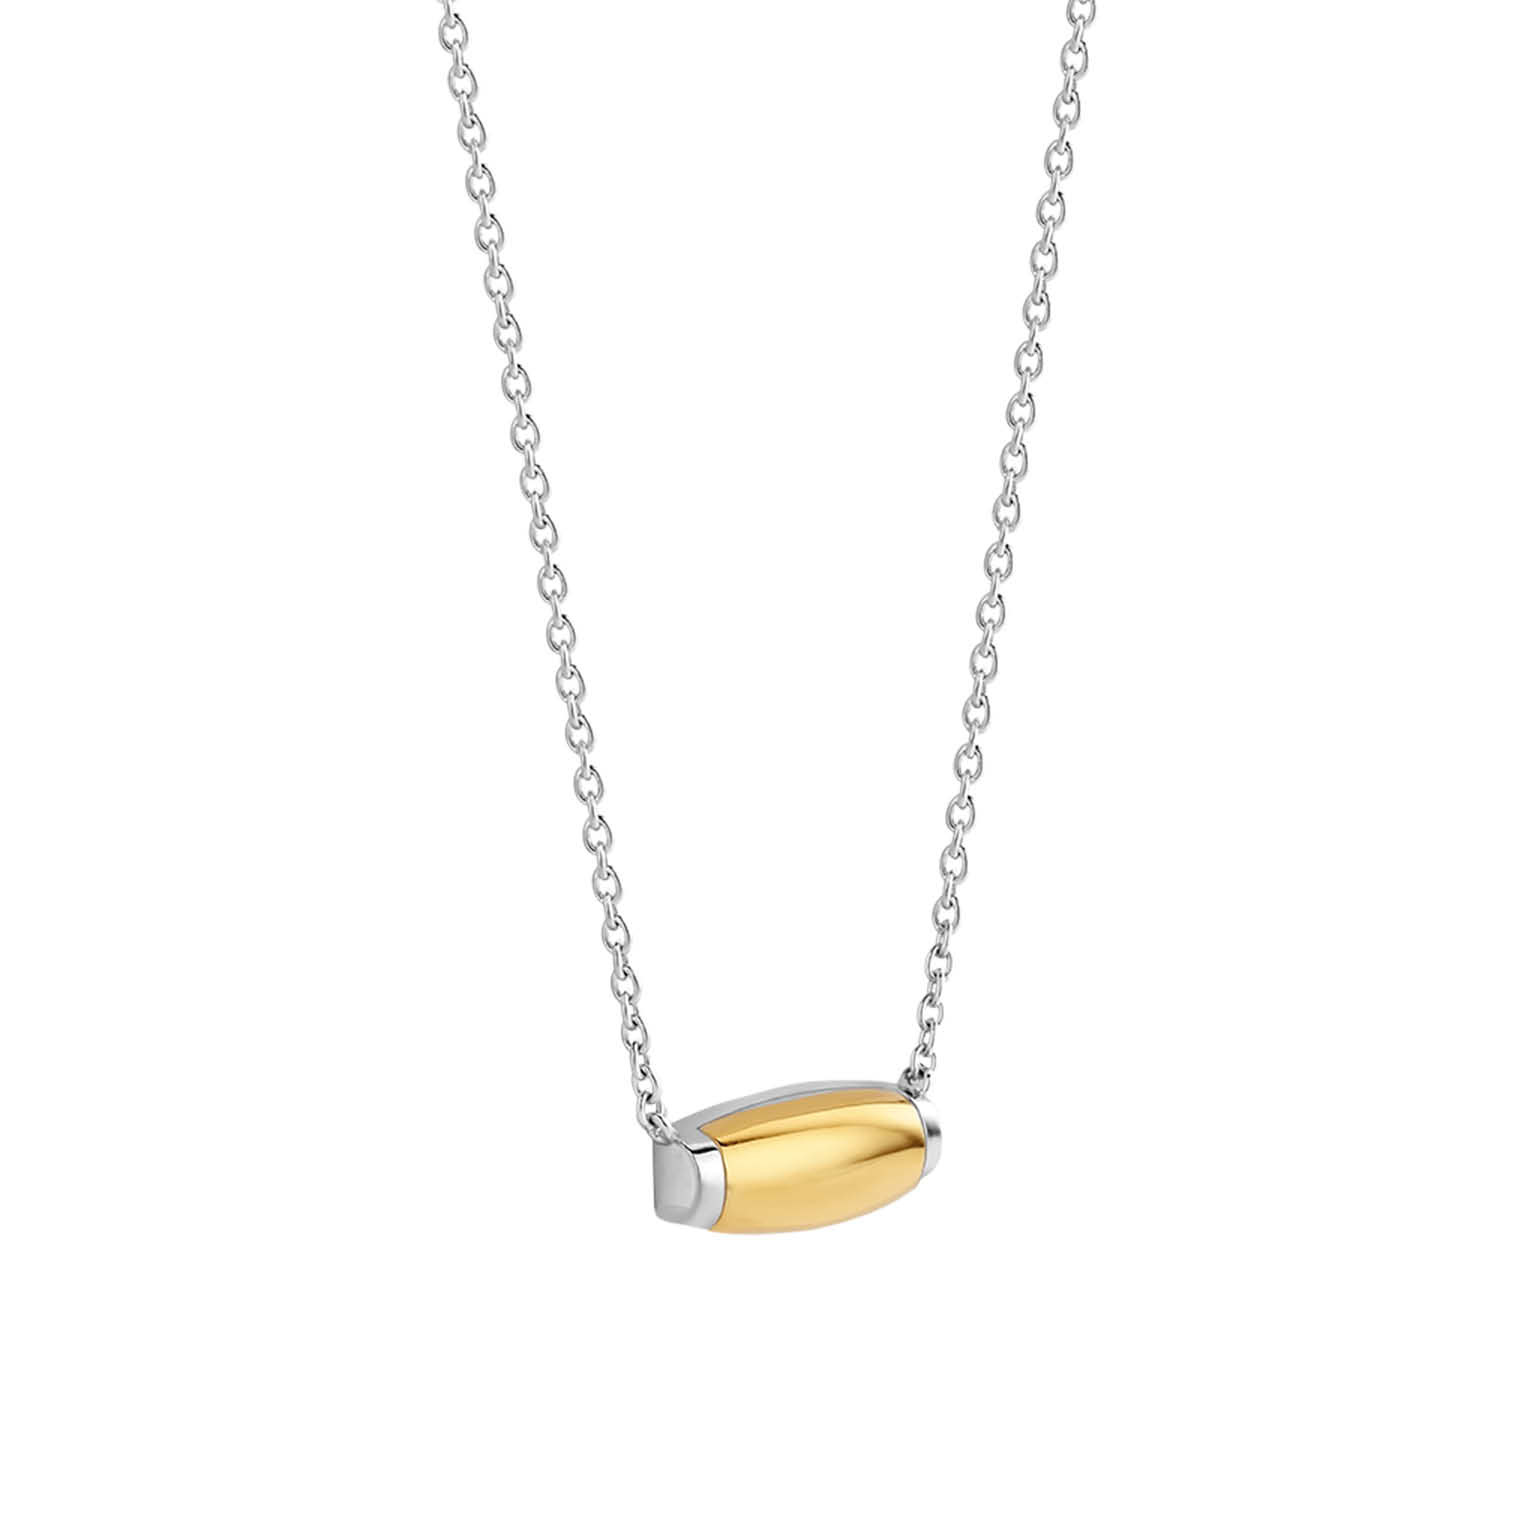 TI SENTO - Milano Necklace 3943ZY-2